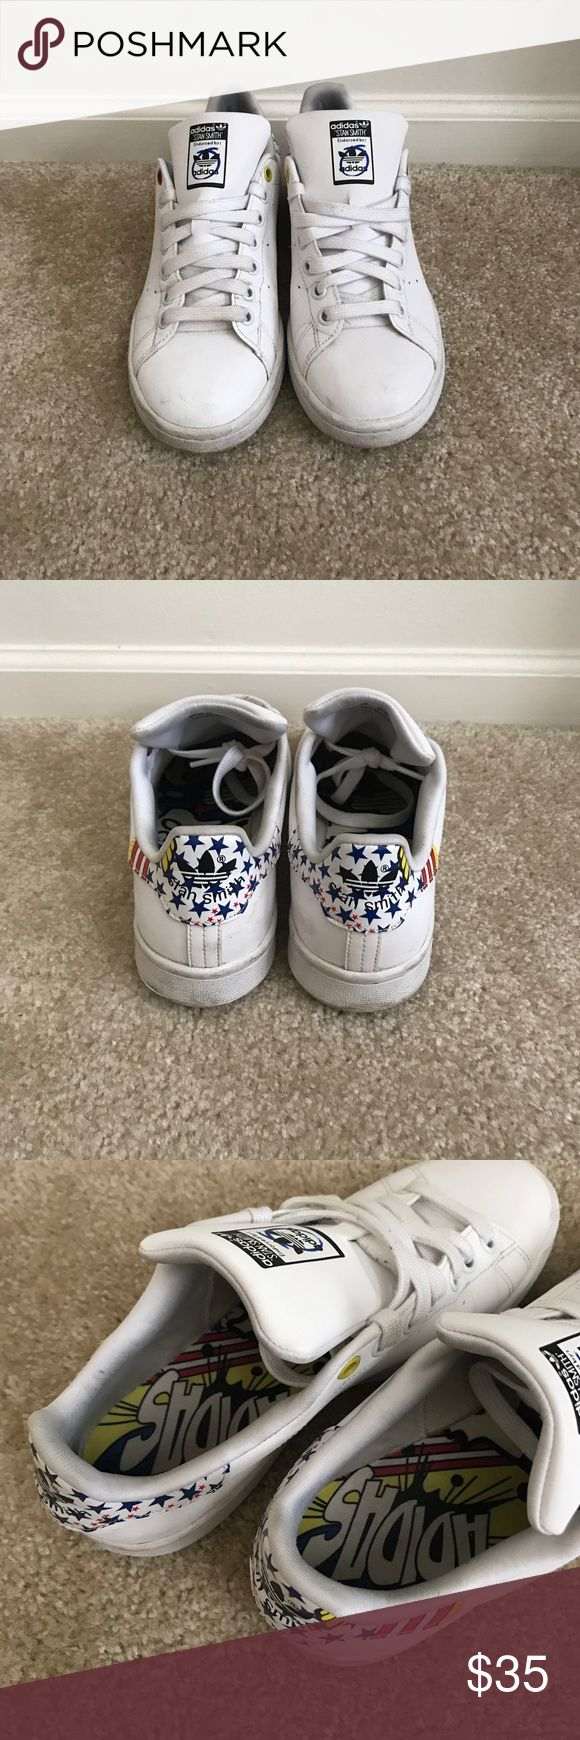 """Rita Ora x adidas Stan Smith """"Reflective"""" Sneaker Cute white """"reflective"""" sneaker - Looks pretty bright when you wear them / Worn throughout last summer for a couple months, soles in great condition / Definite signs of wear on the edges of the shoes / Limited Edition and completely rare purchase Adidas Shoes Sneakers"""